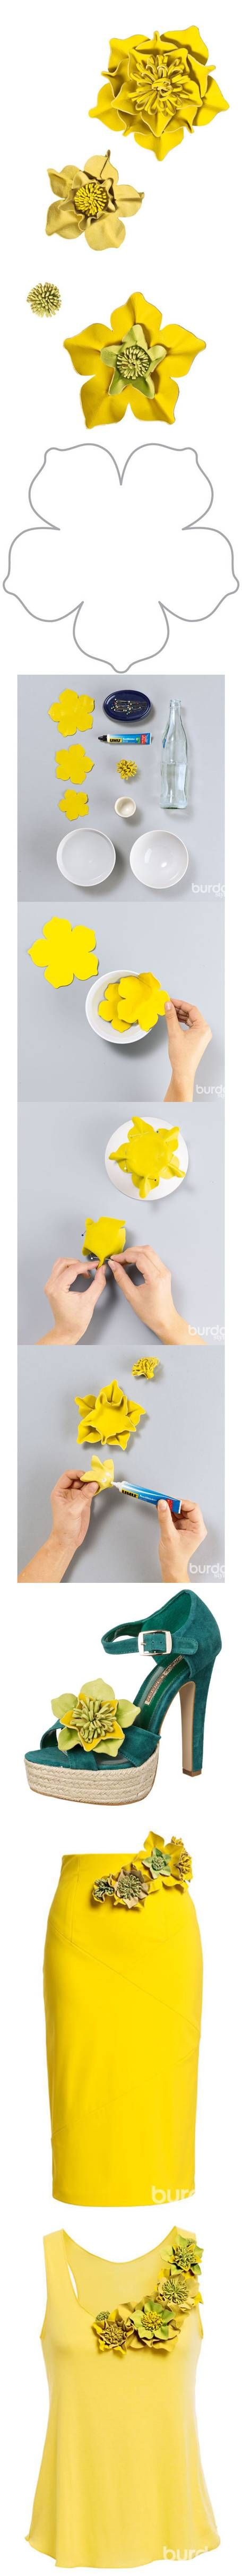 DIY Fashionable Leather Flowers http://www.buzzinspired.com/how-to-instructions/diy-fashionable-leather-flowers/